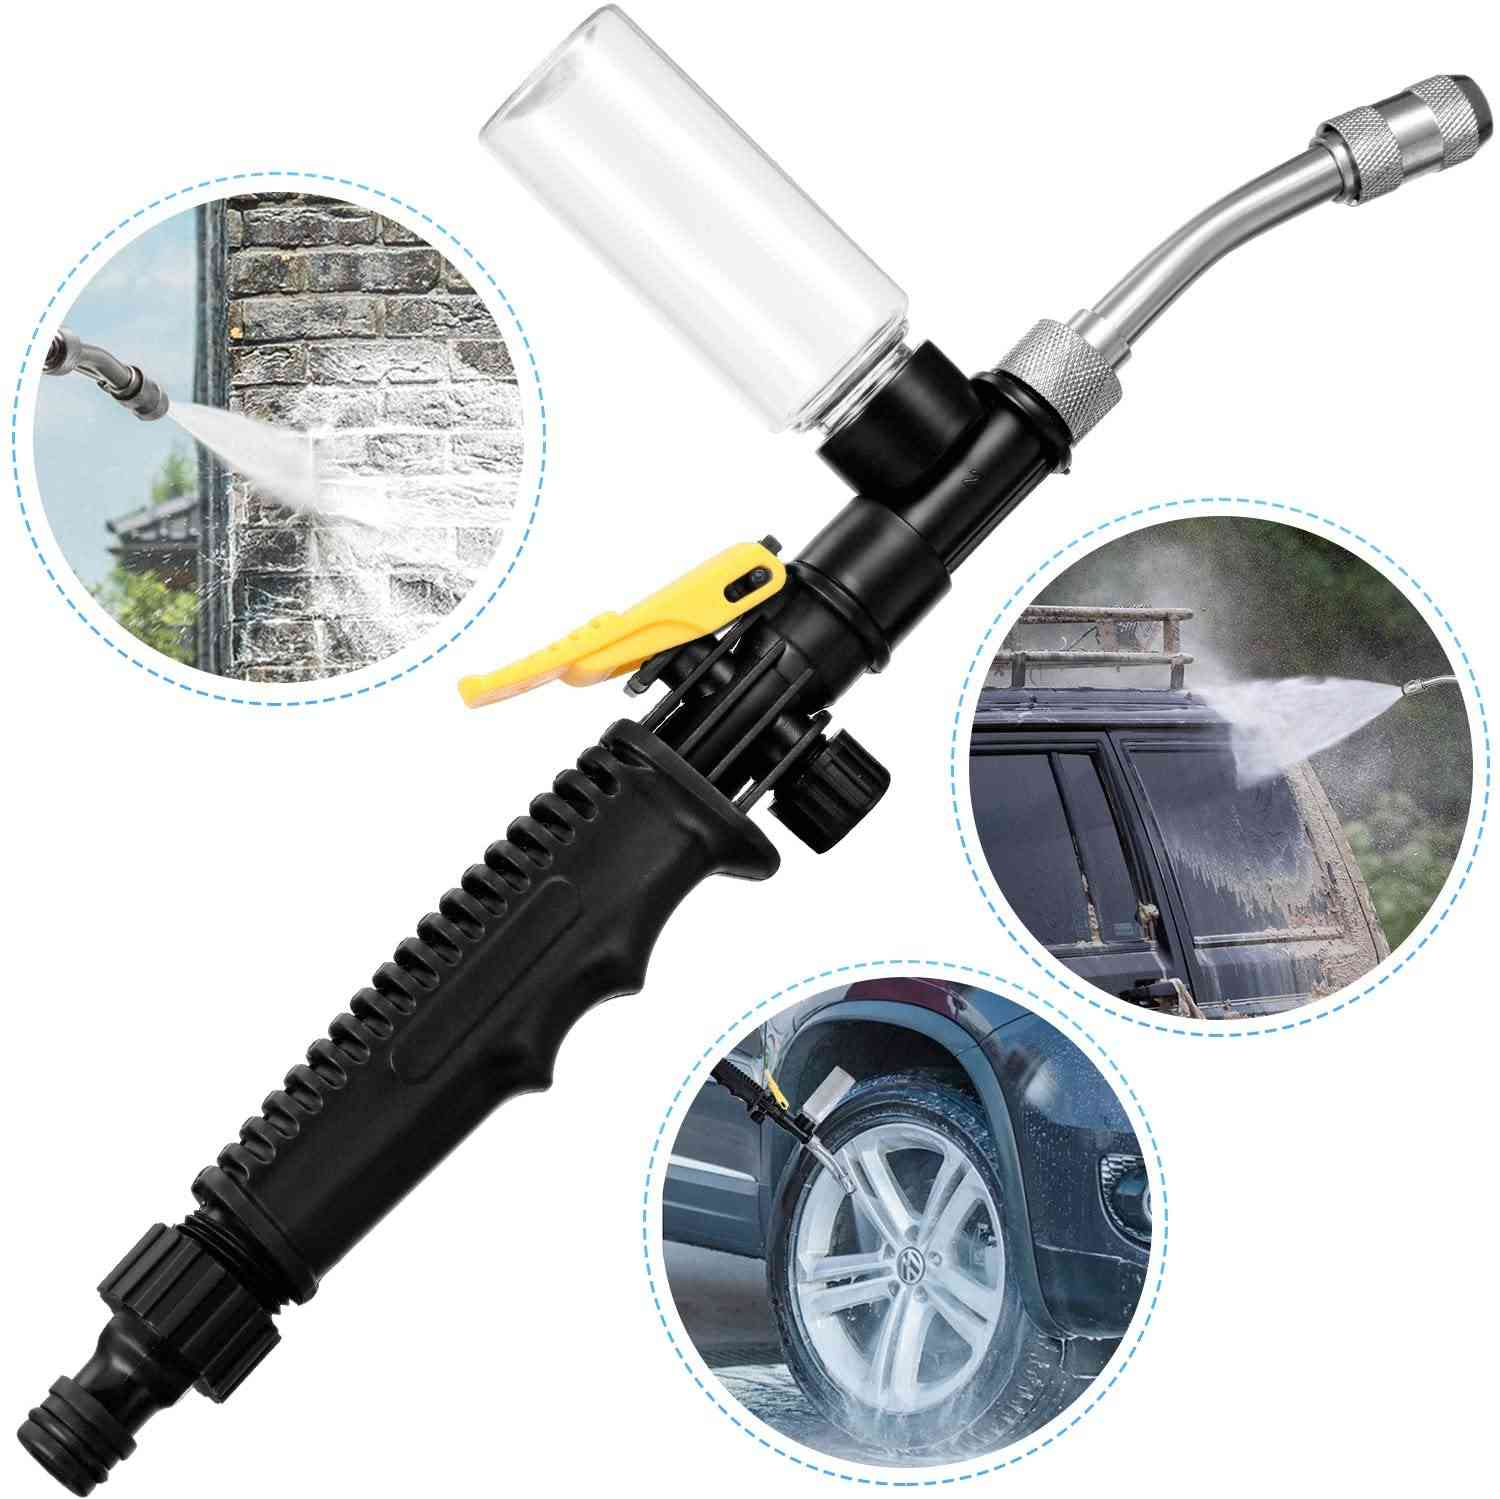 2-in-1 High Impact Washing Wand Water Jet Nozzle Spray Washer